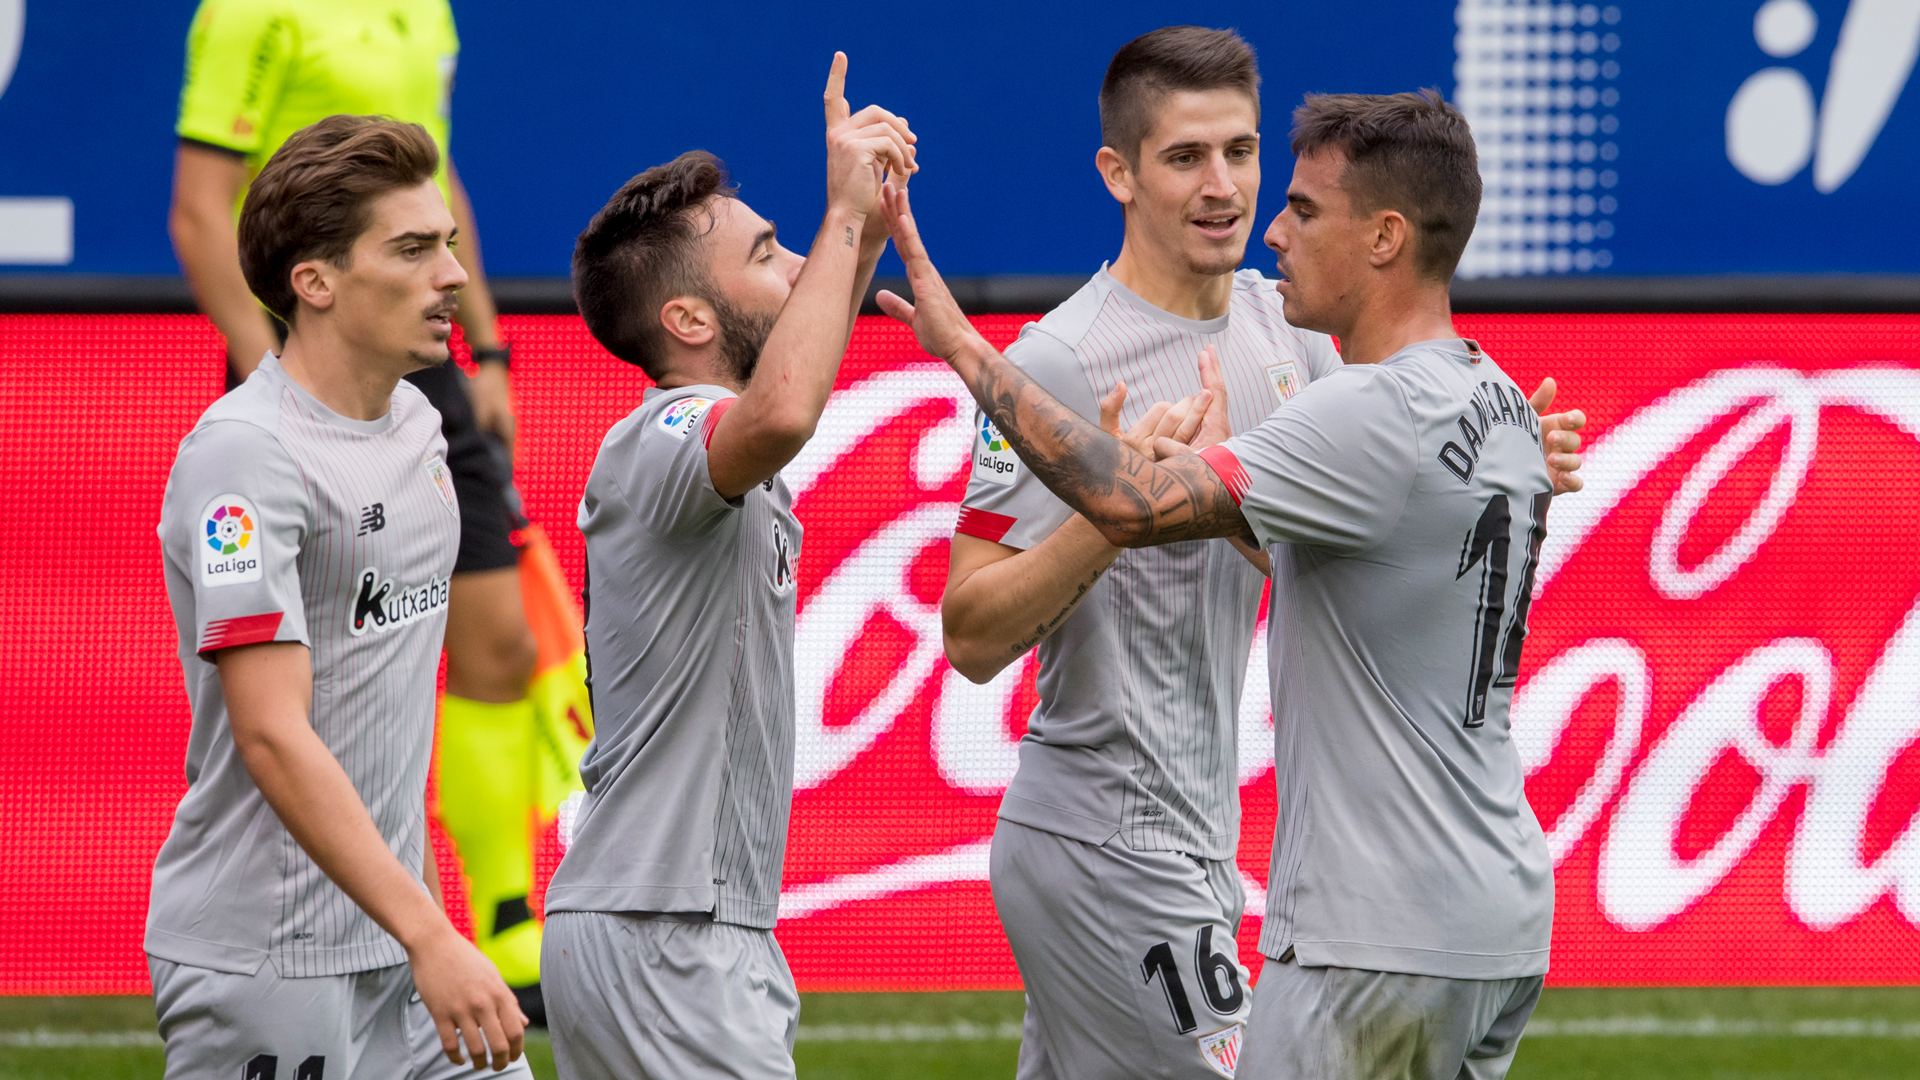 Five lions have already scored in LaLiga 2020-21